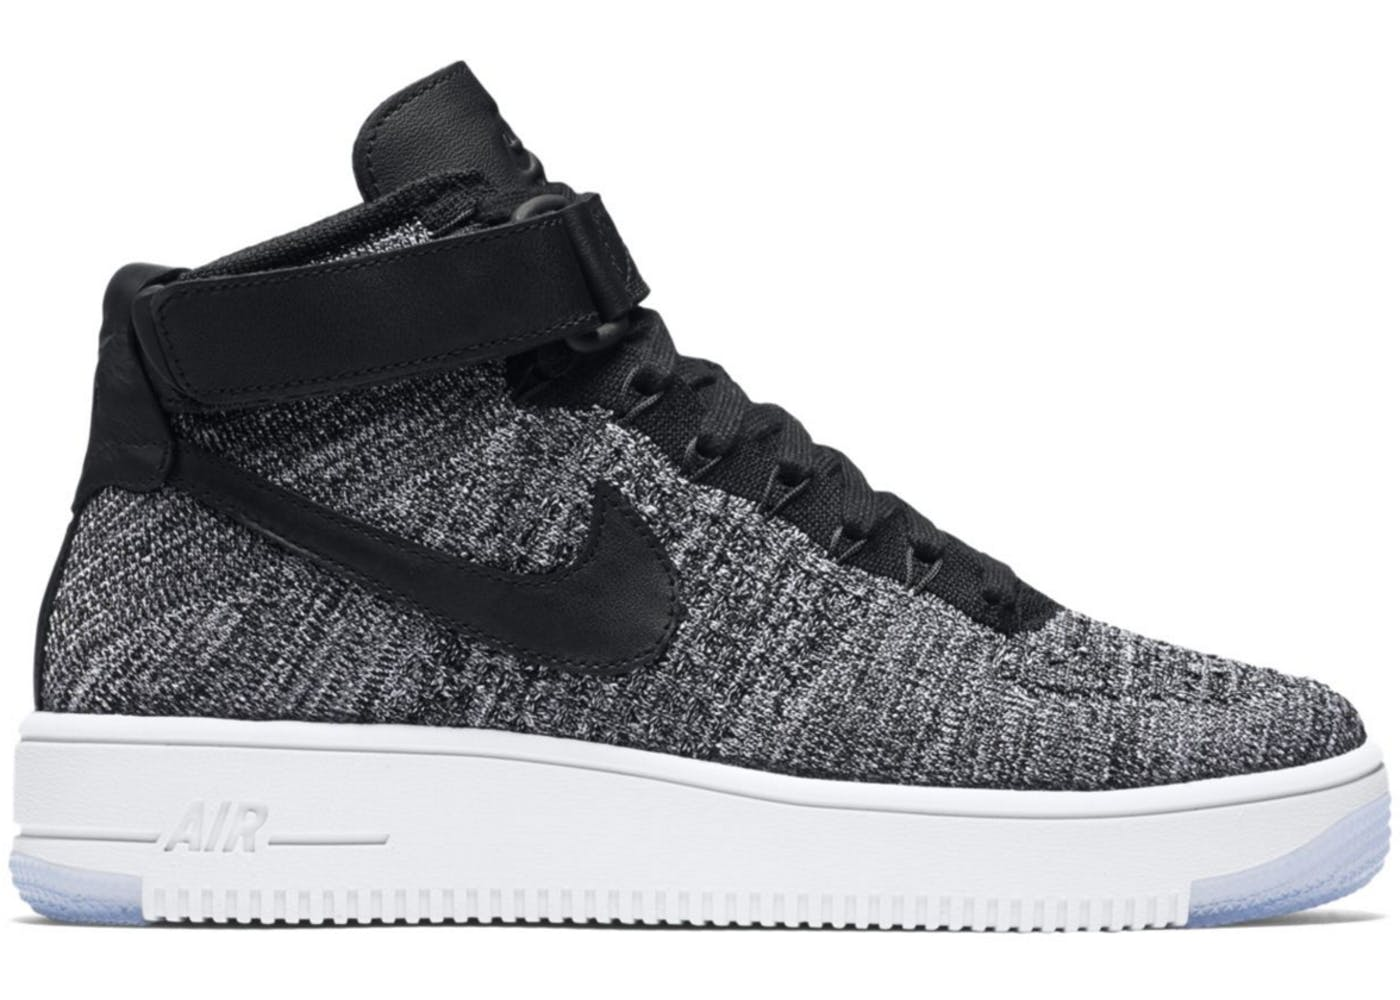 Discount Air Force One Shoes